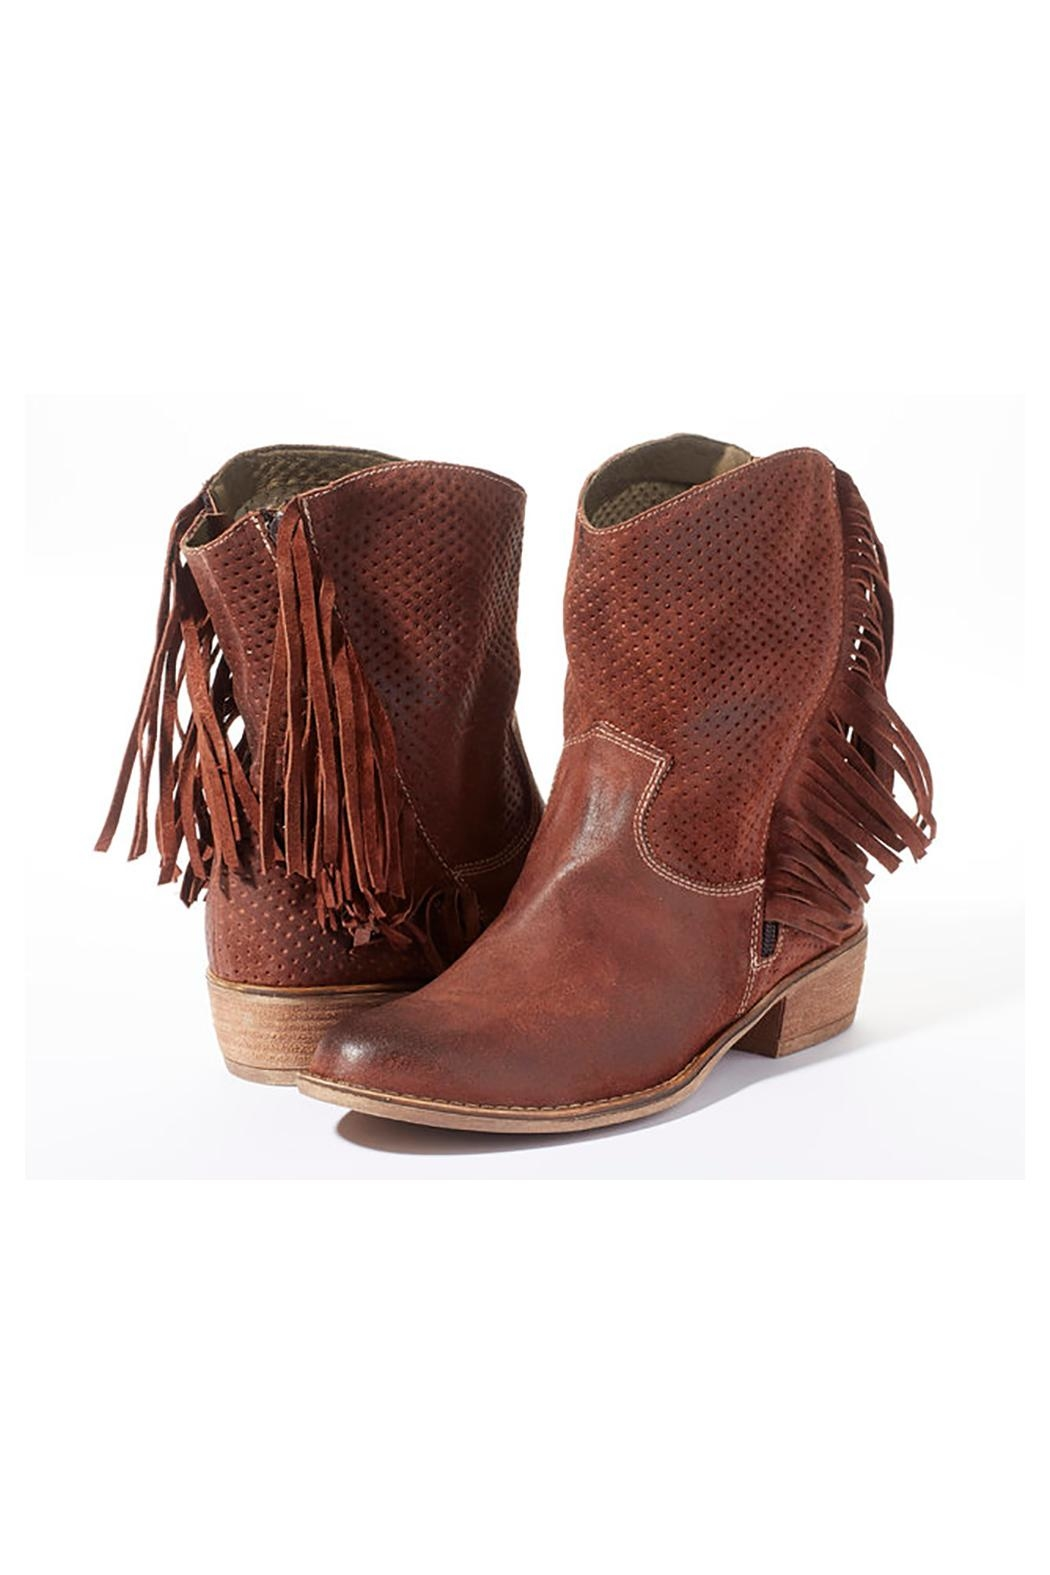 Rebel With Cause Fringe Leather Boots - Main Image